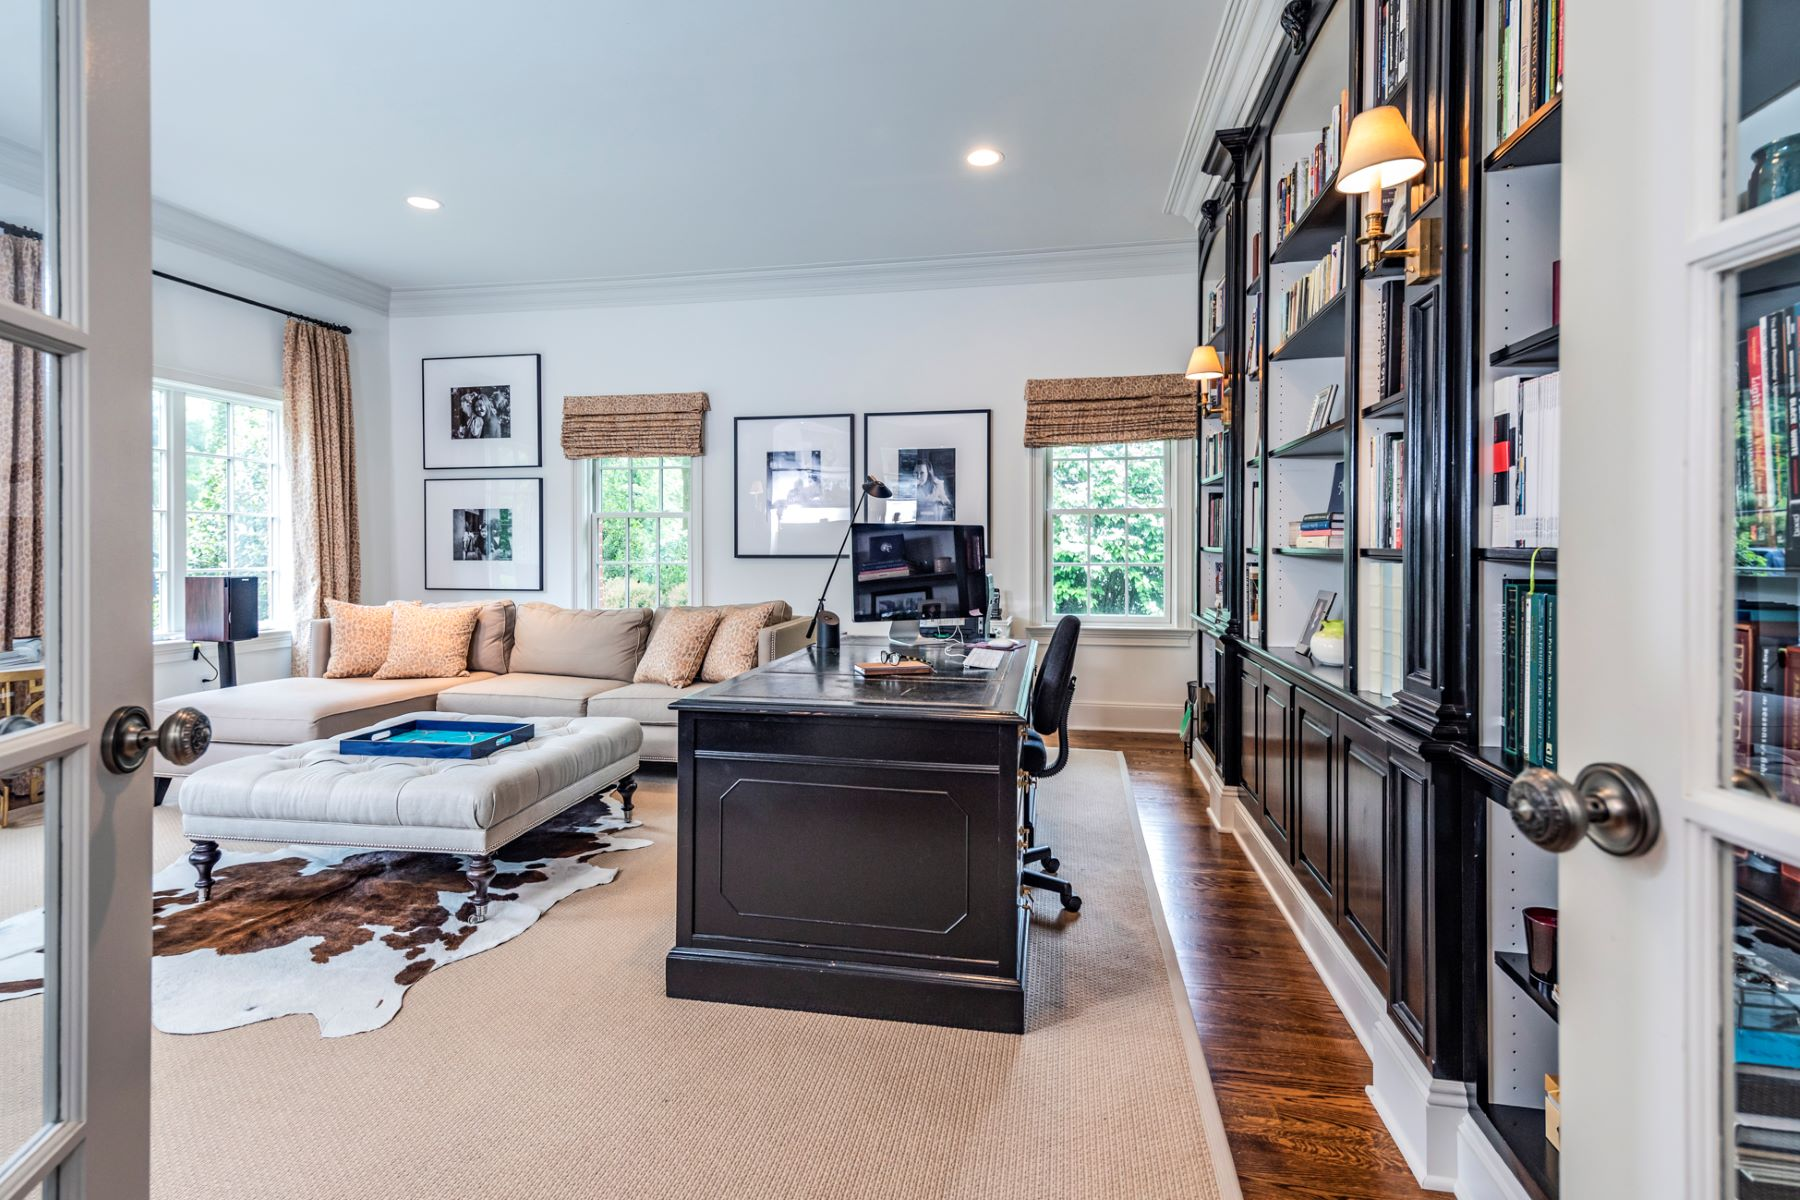 Additional photo for property listing at Exceeding Expectations at Every Turn 54 Lafayette Road West, Princeton, Νιου Τζερσεϋ 08540 Ηνωμένες Πολιτείες